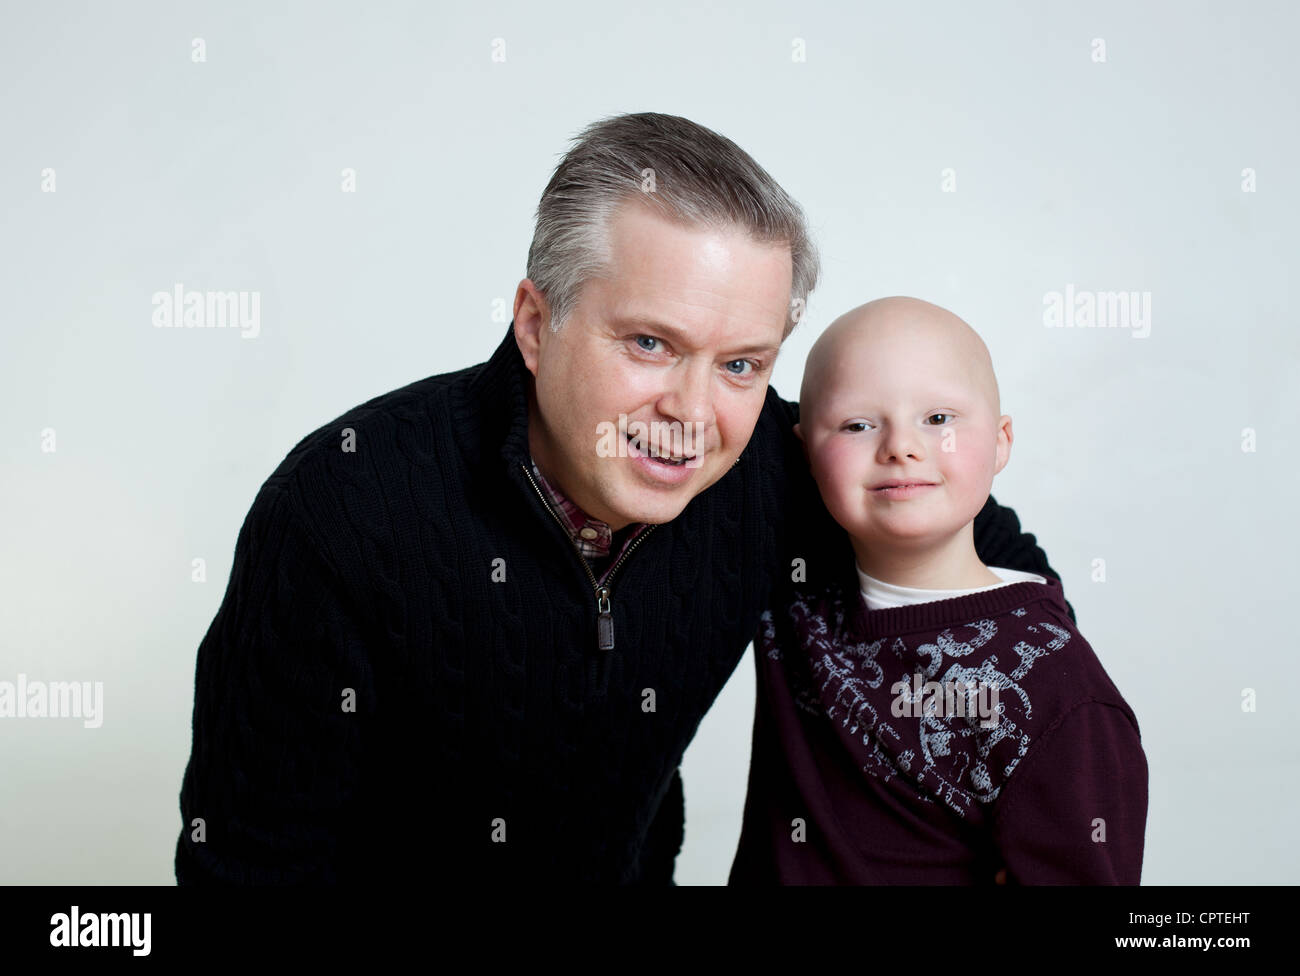 Father and son with Down's Syndrome, portrait - Stock Image